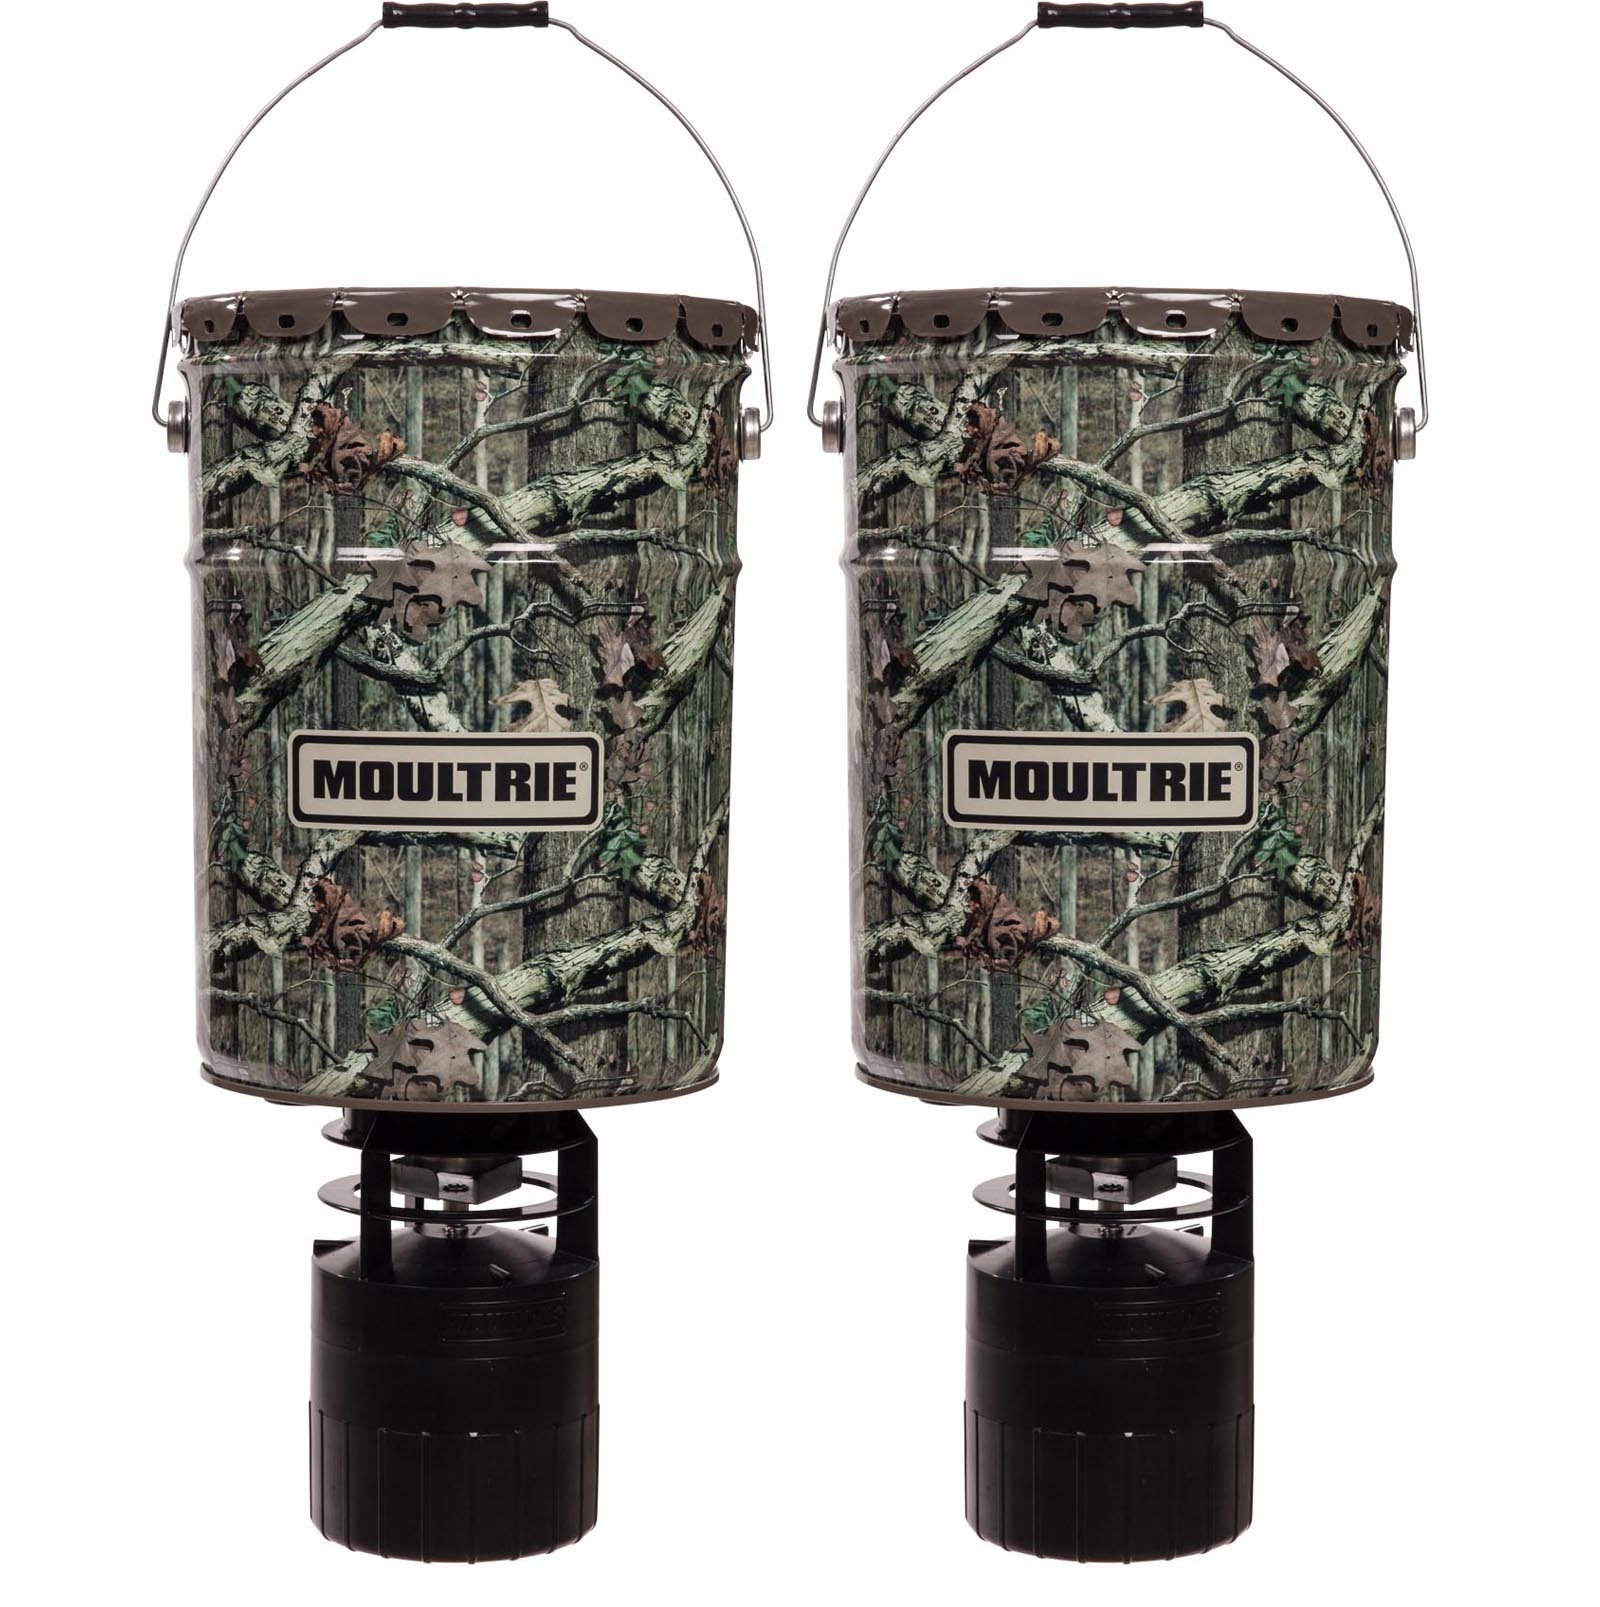 Moultrie (2) 6.5 Gallon 360° Pro-Hunter Bucket Style Hanging Game Deer Feeders by Moultrie (Image #1)